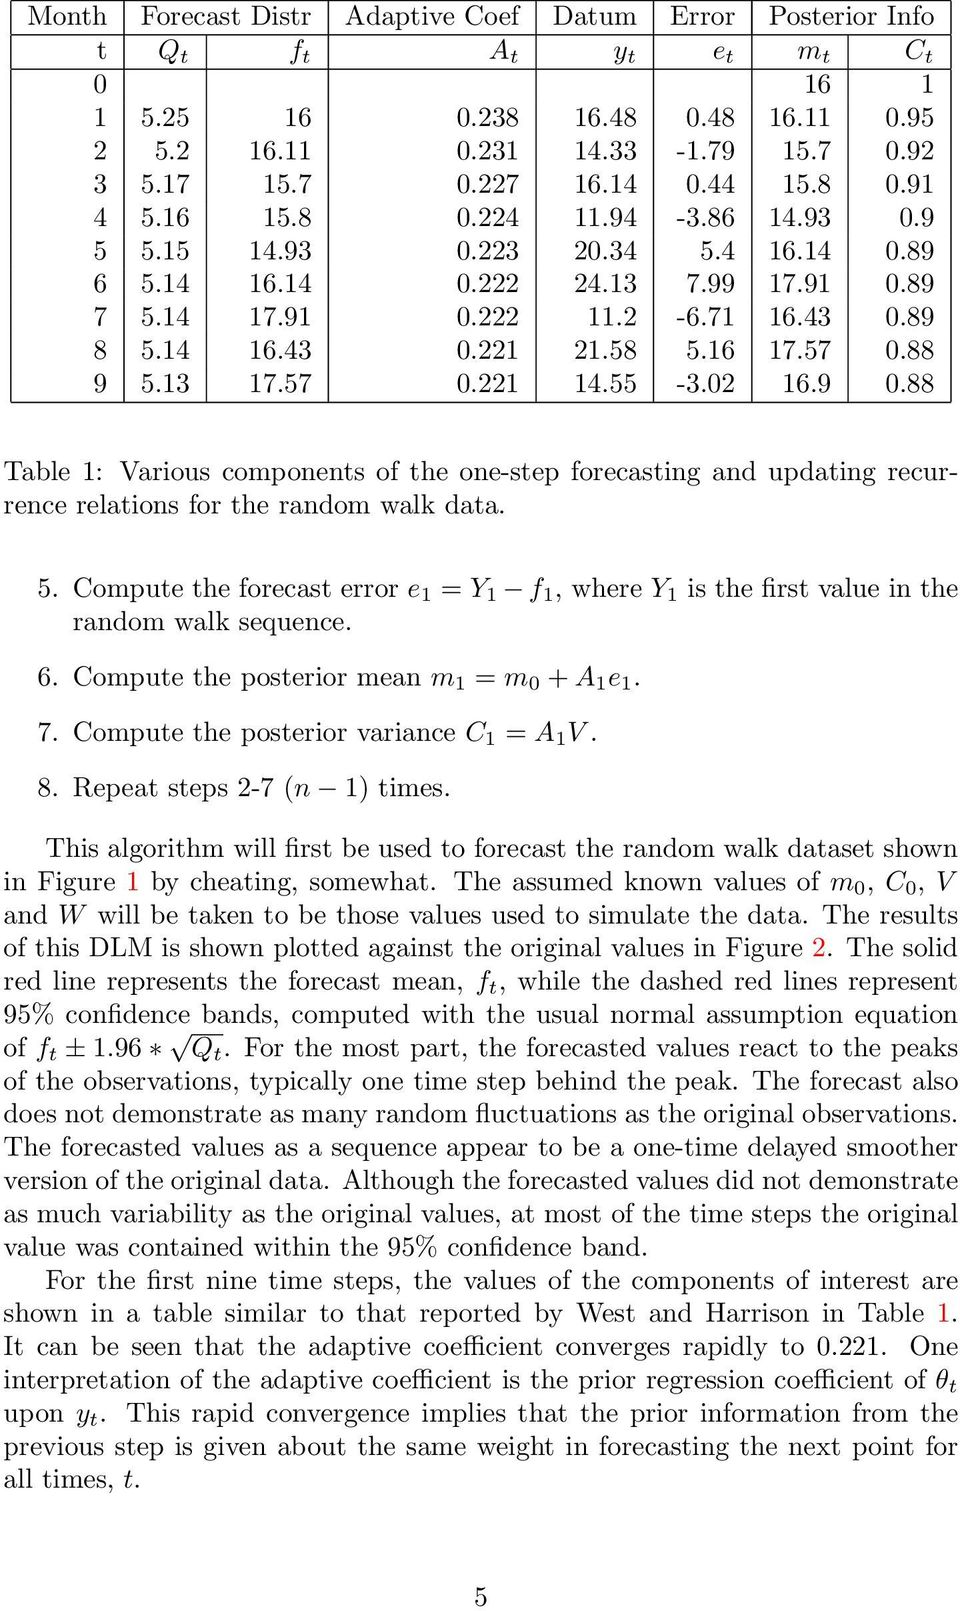 58 5.16 17.57 0.88 9 5.13 17.57 0.221 14.55-3.02 16.9 0.88 Table 1: Various components of the one-step forecasting and updating recurrence relations for the random walk data. 5. Compute the forecast error e 1 = Y 1 f 1, where Y 1 is the first value in the random walk sequence.